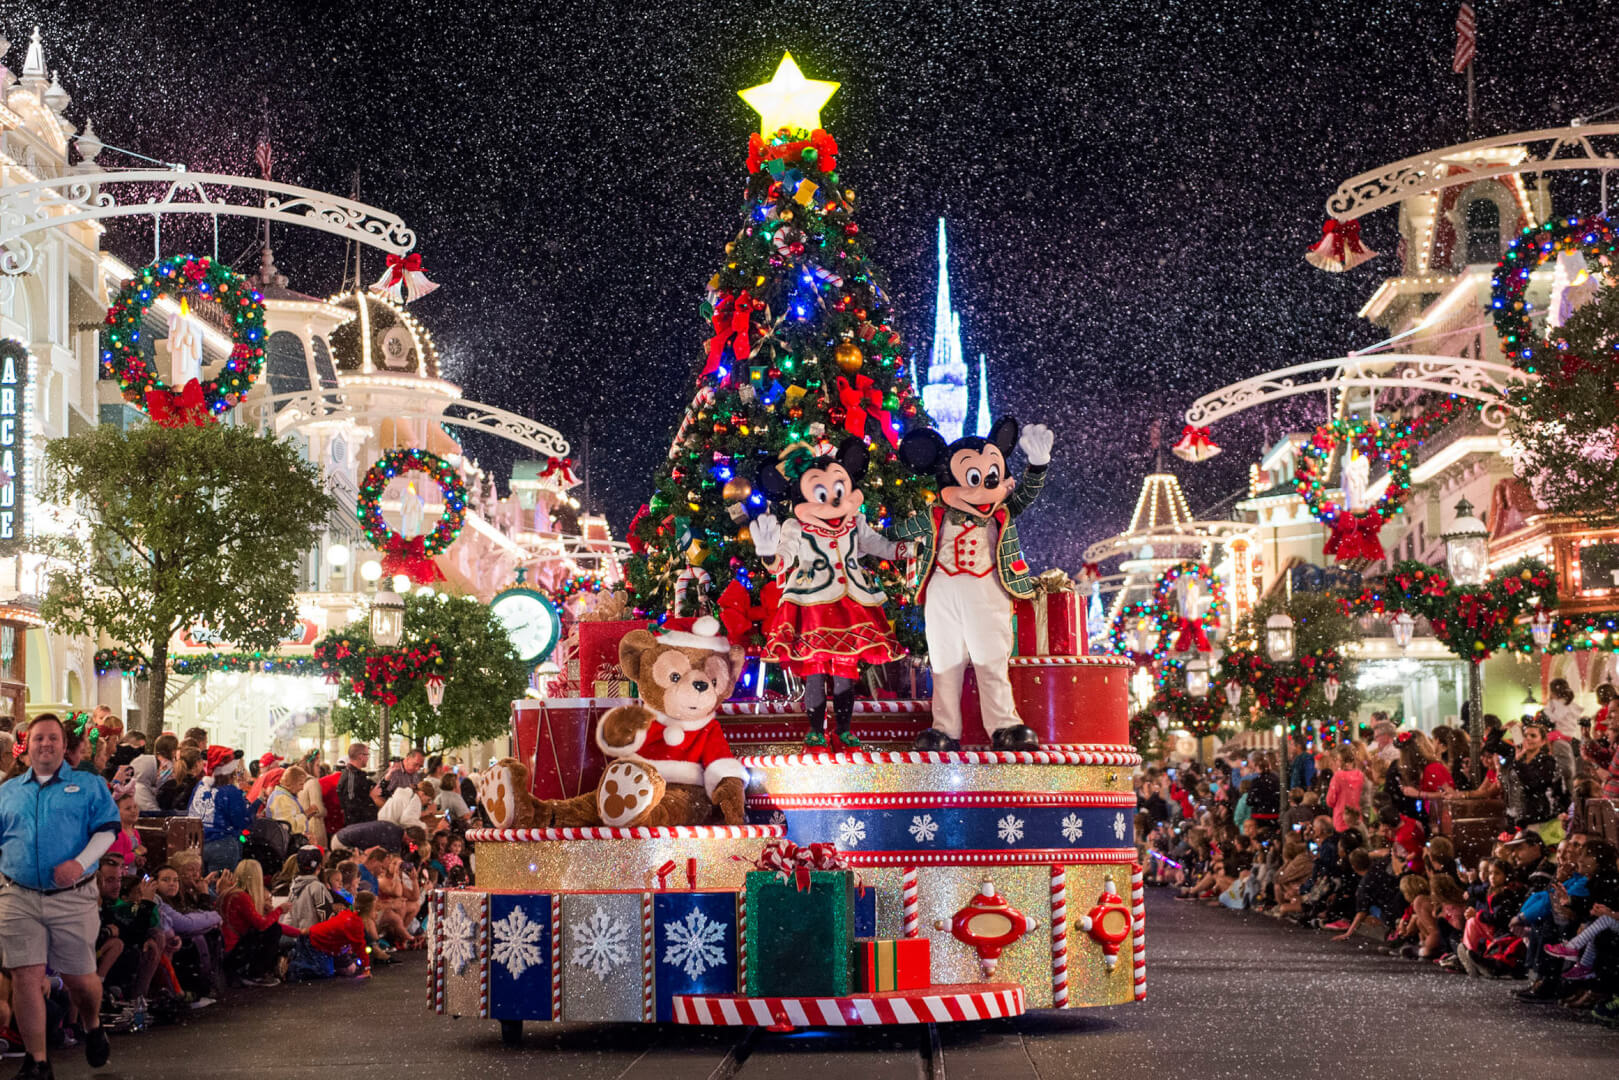 Disney world christmas decorations 2014 - Want More Tips For Making It Through Christmas With Ease At Walt Disney World